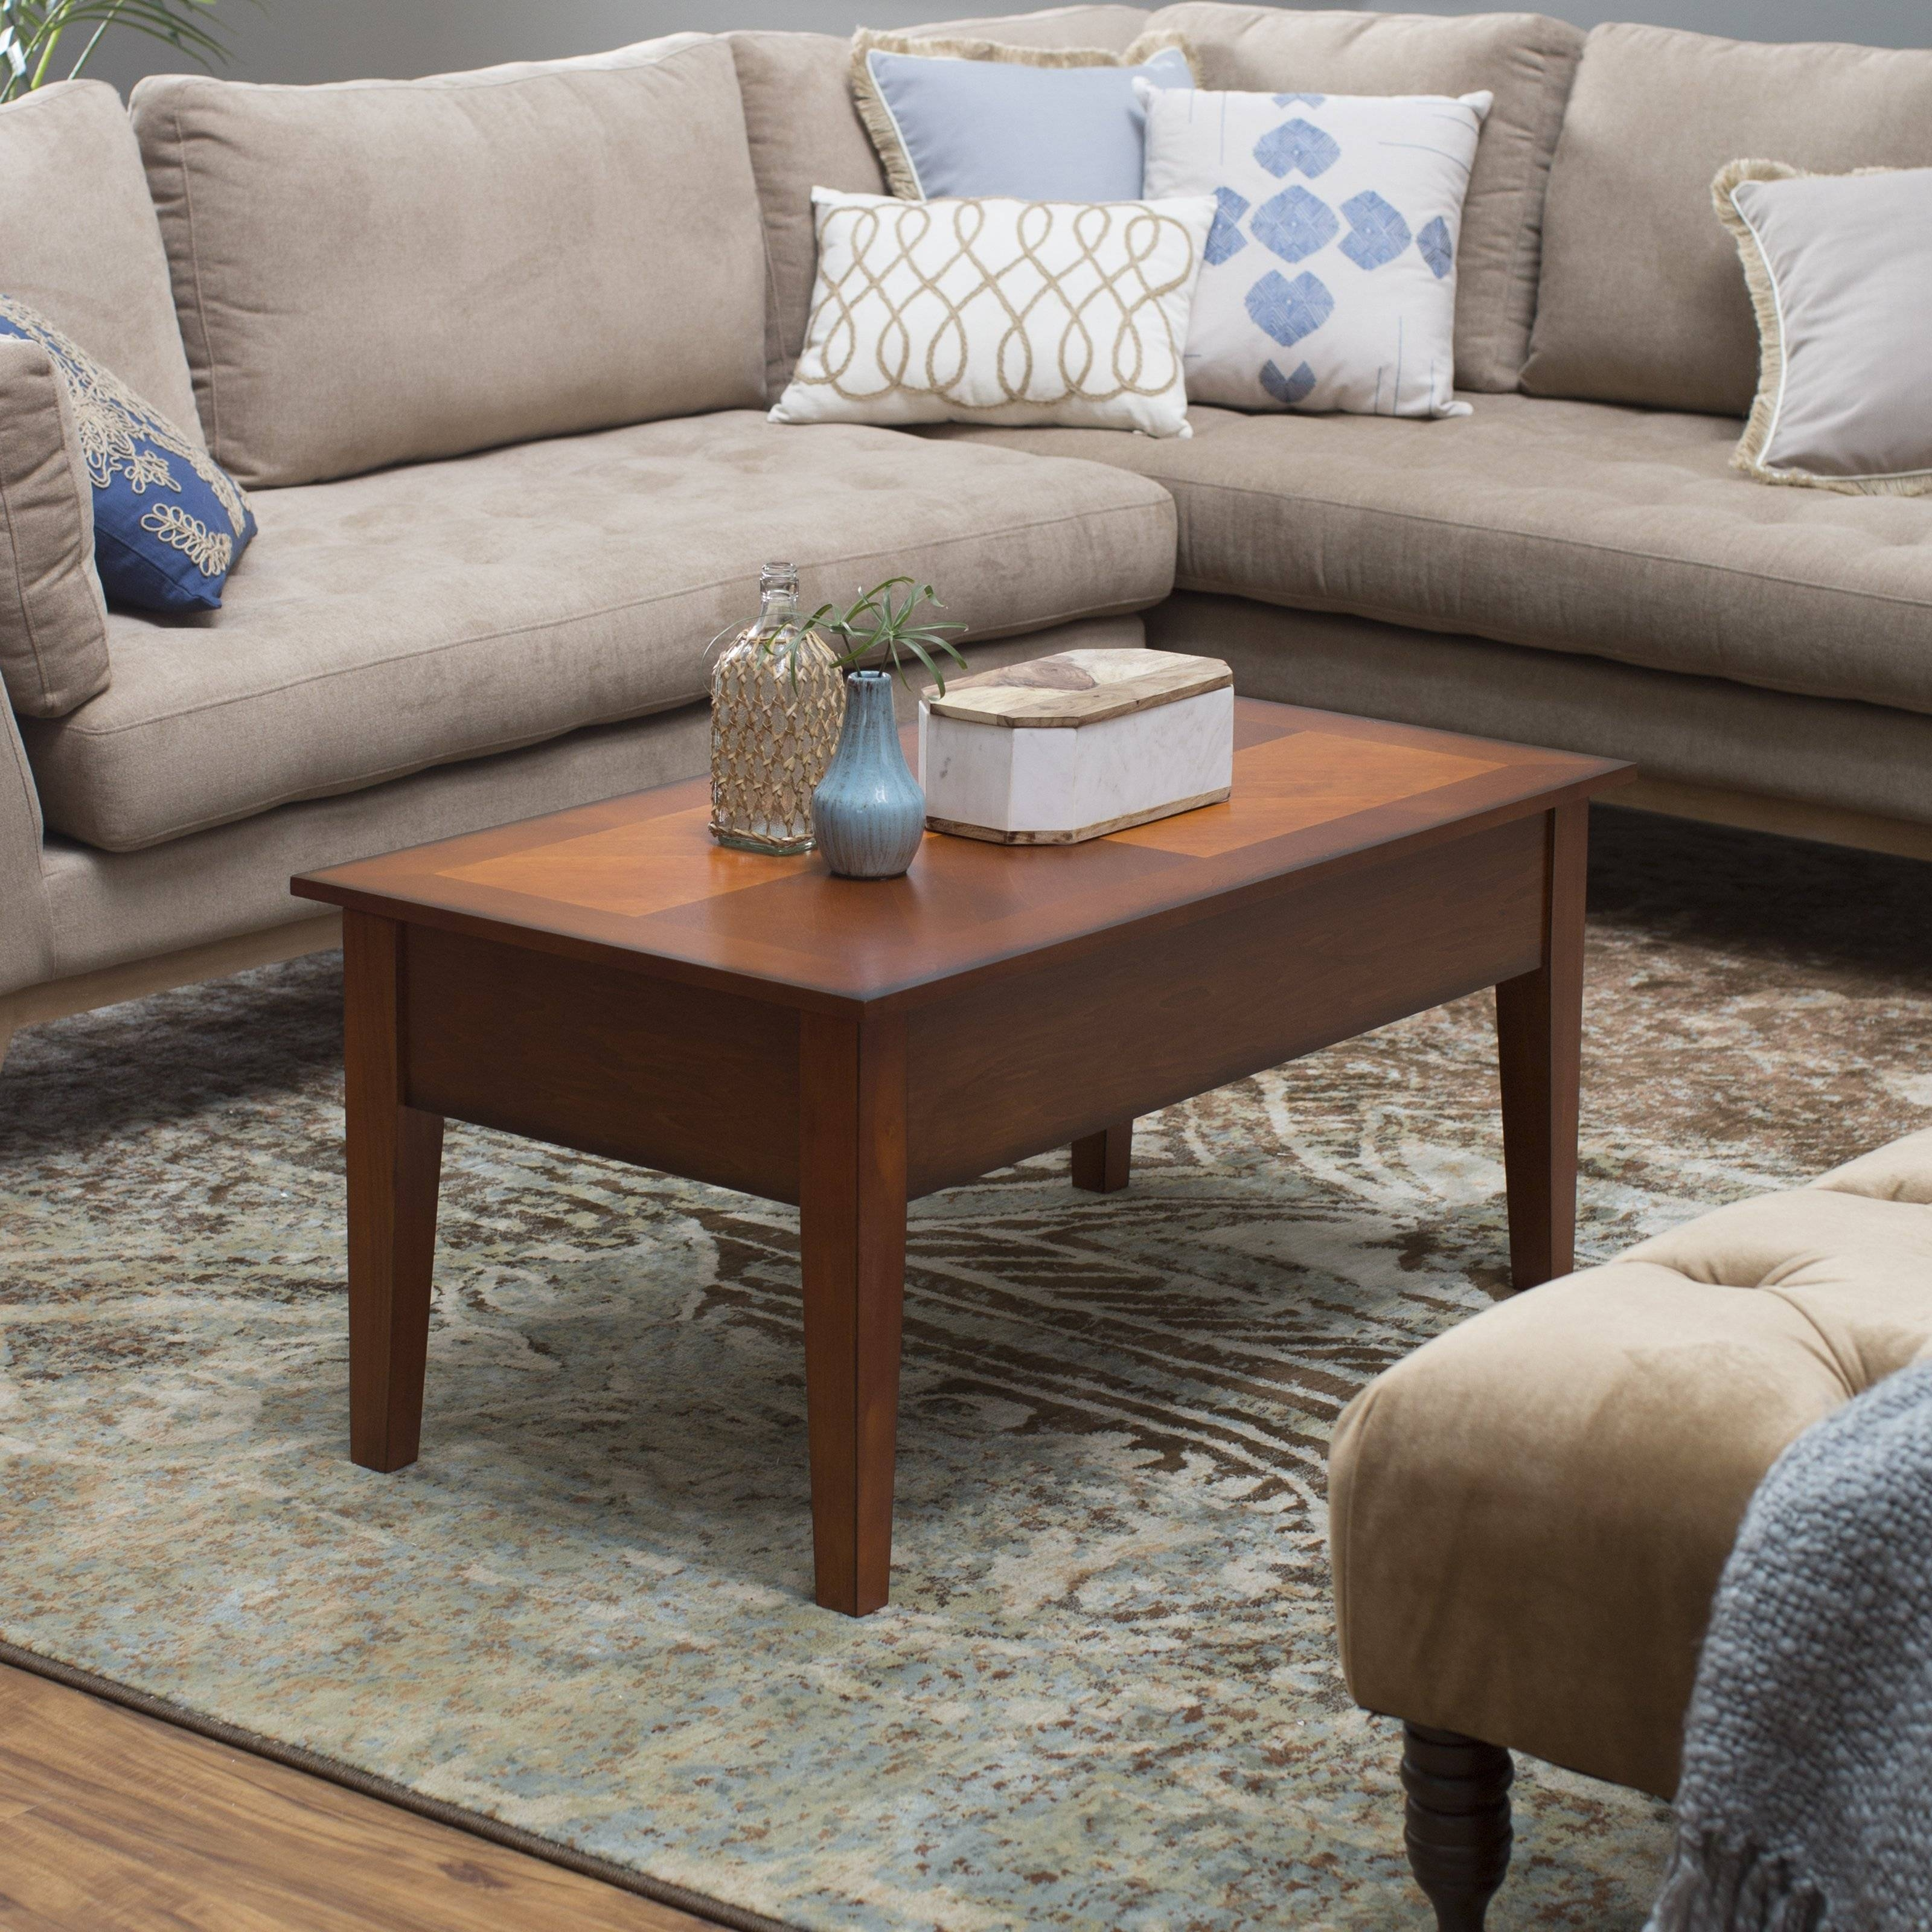 Turner Lift Top Coffee Table - Espresso | Hayneedle pertaining to Lift Coffee Tables (Image 25 of 30)